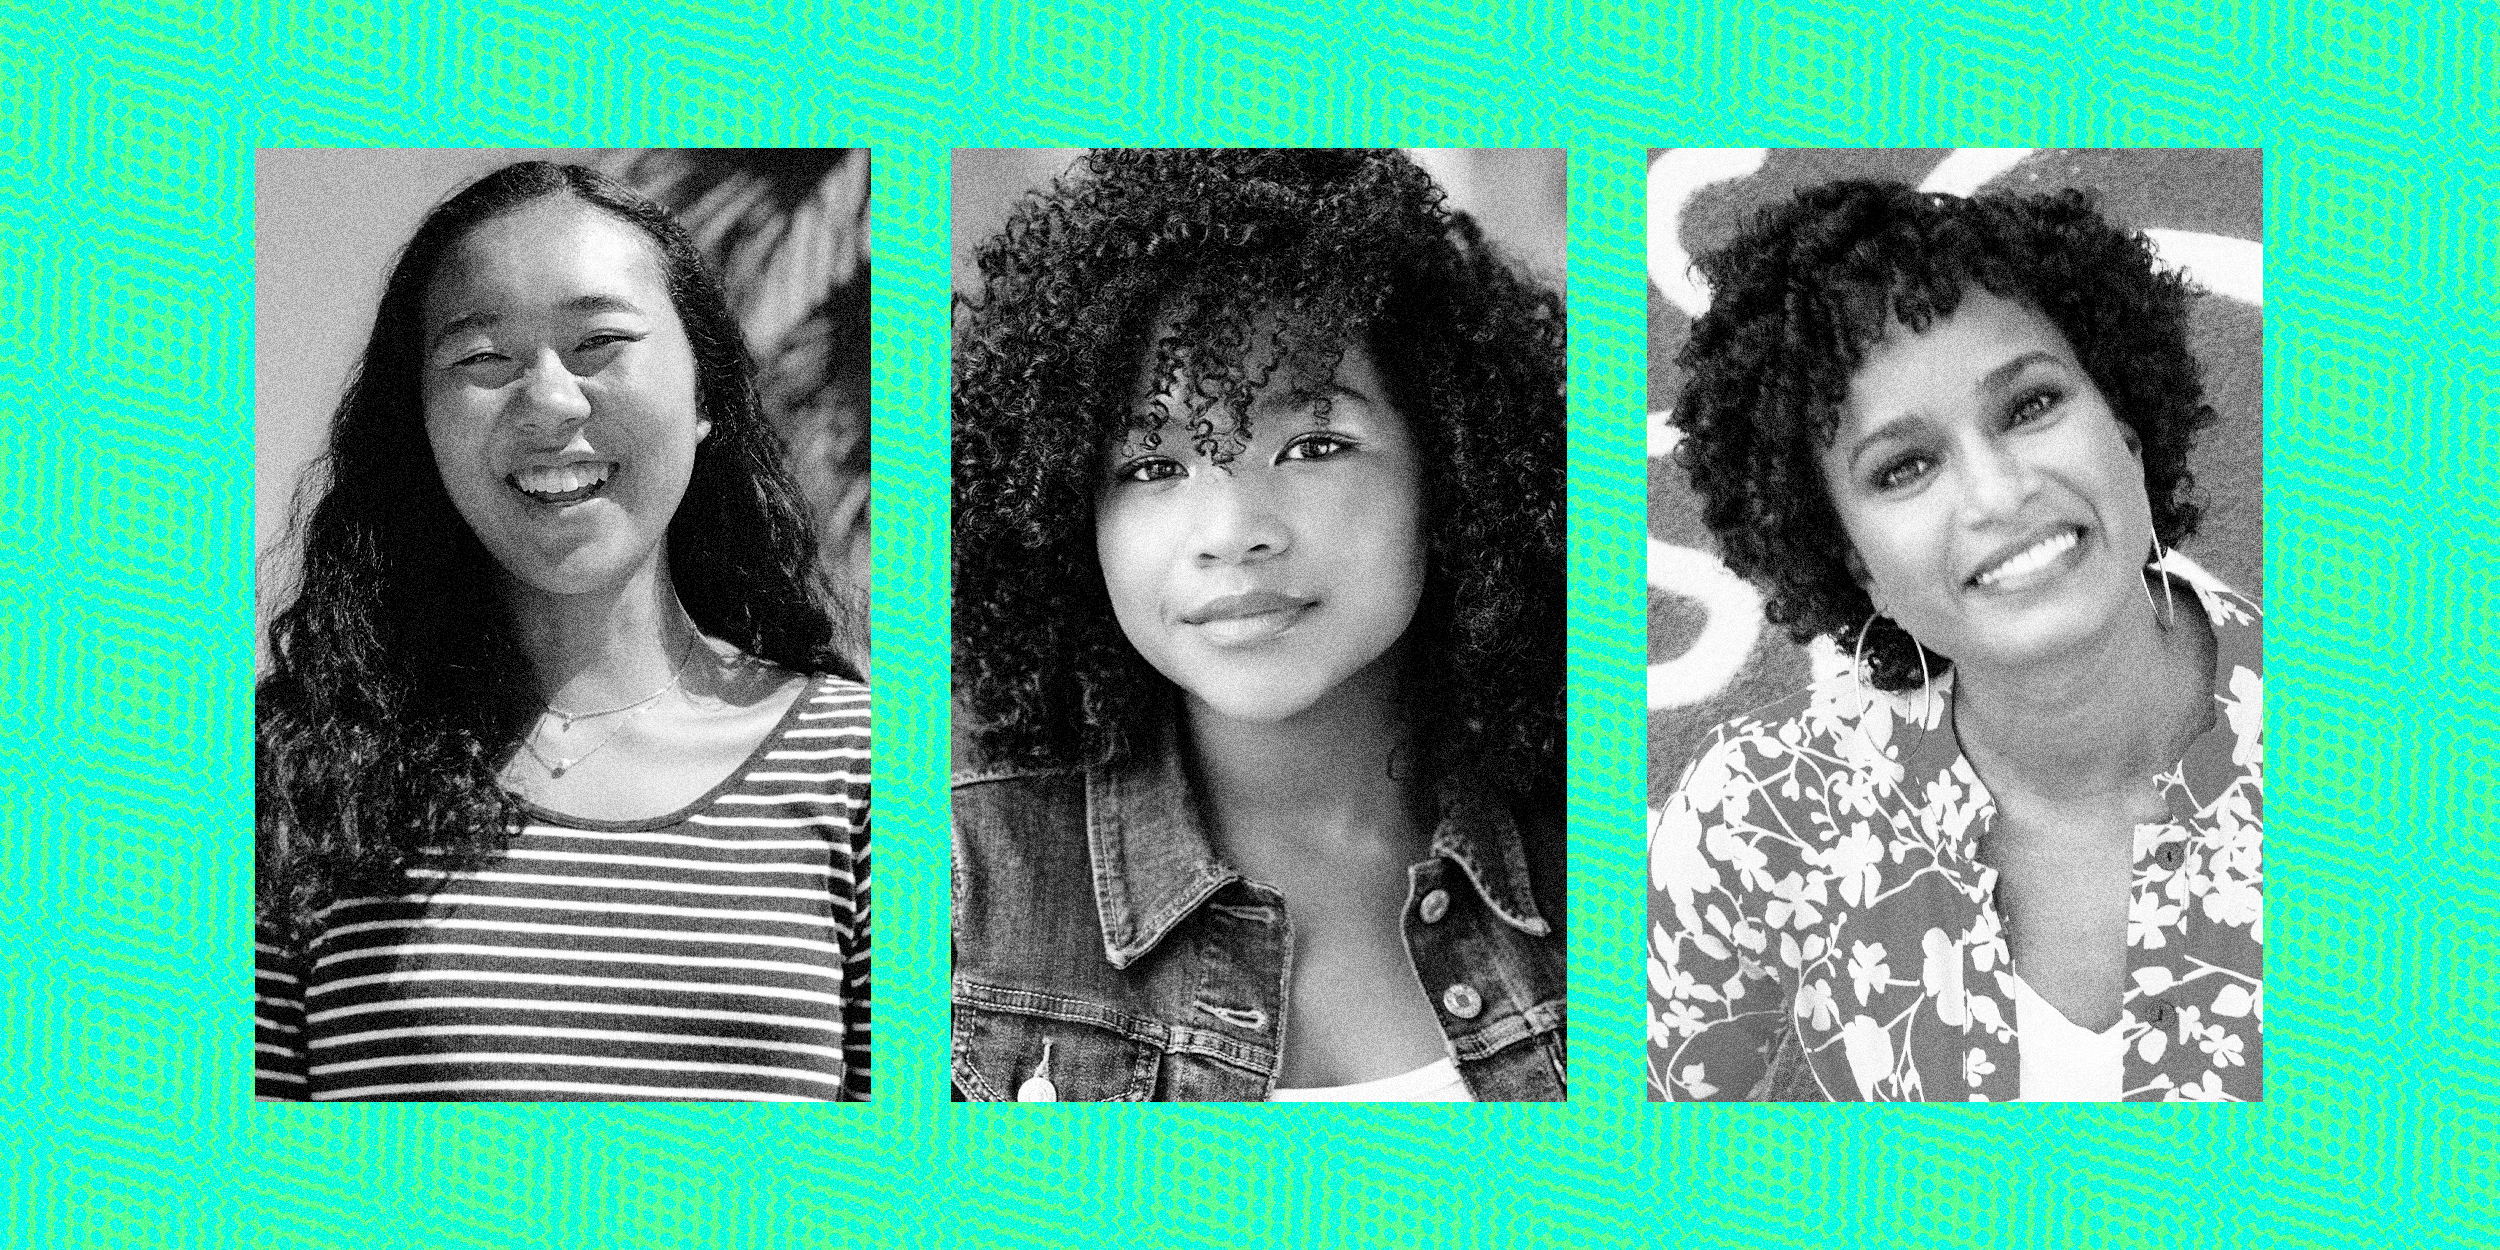 Not-enough-or-double-the-prejudice:-On-being-Black-and-Asian-American-in-2020